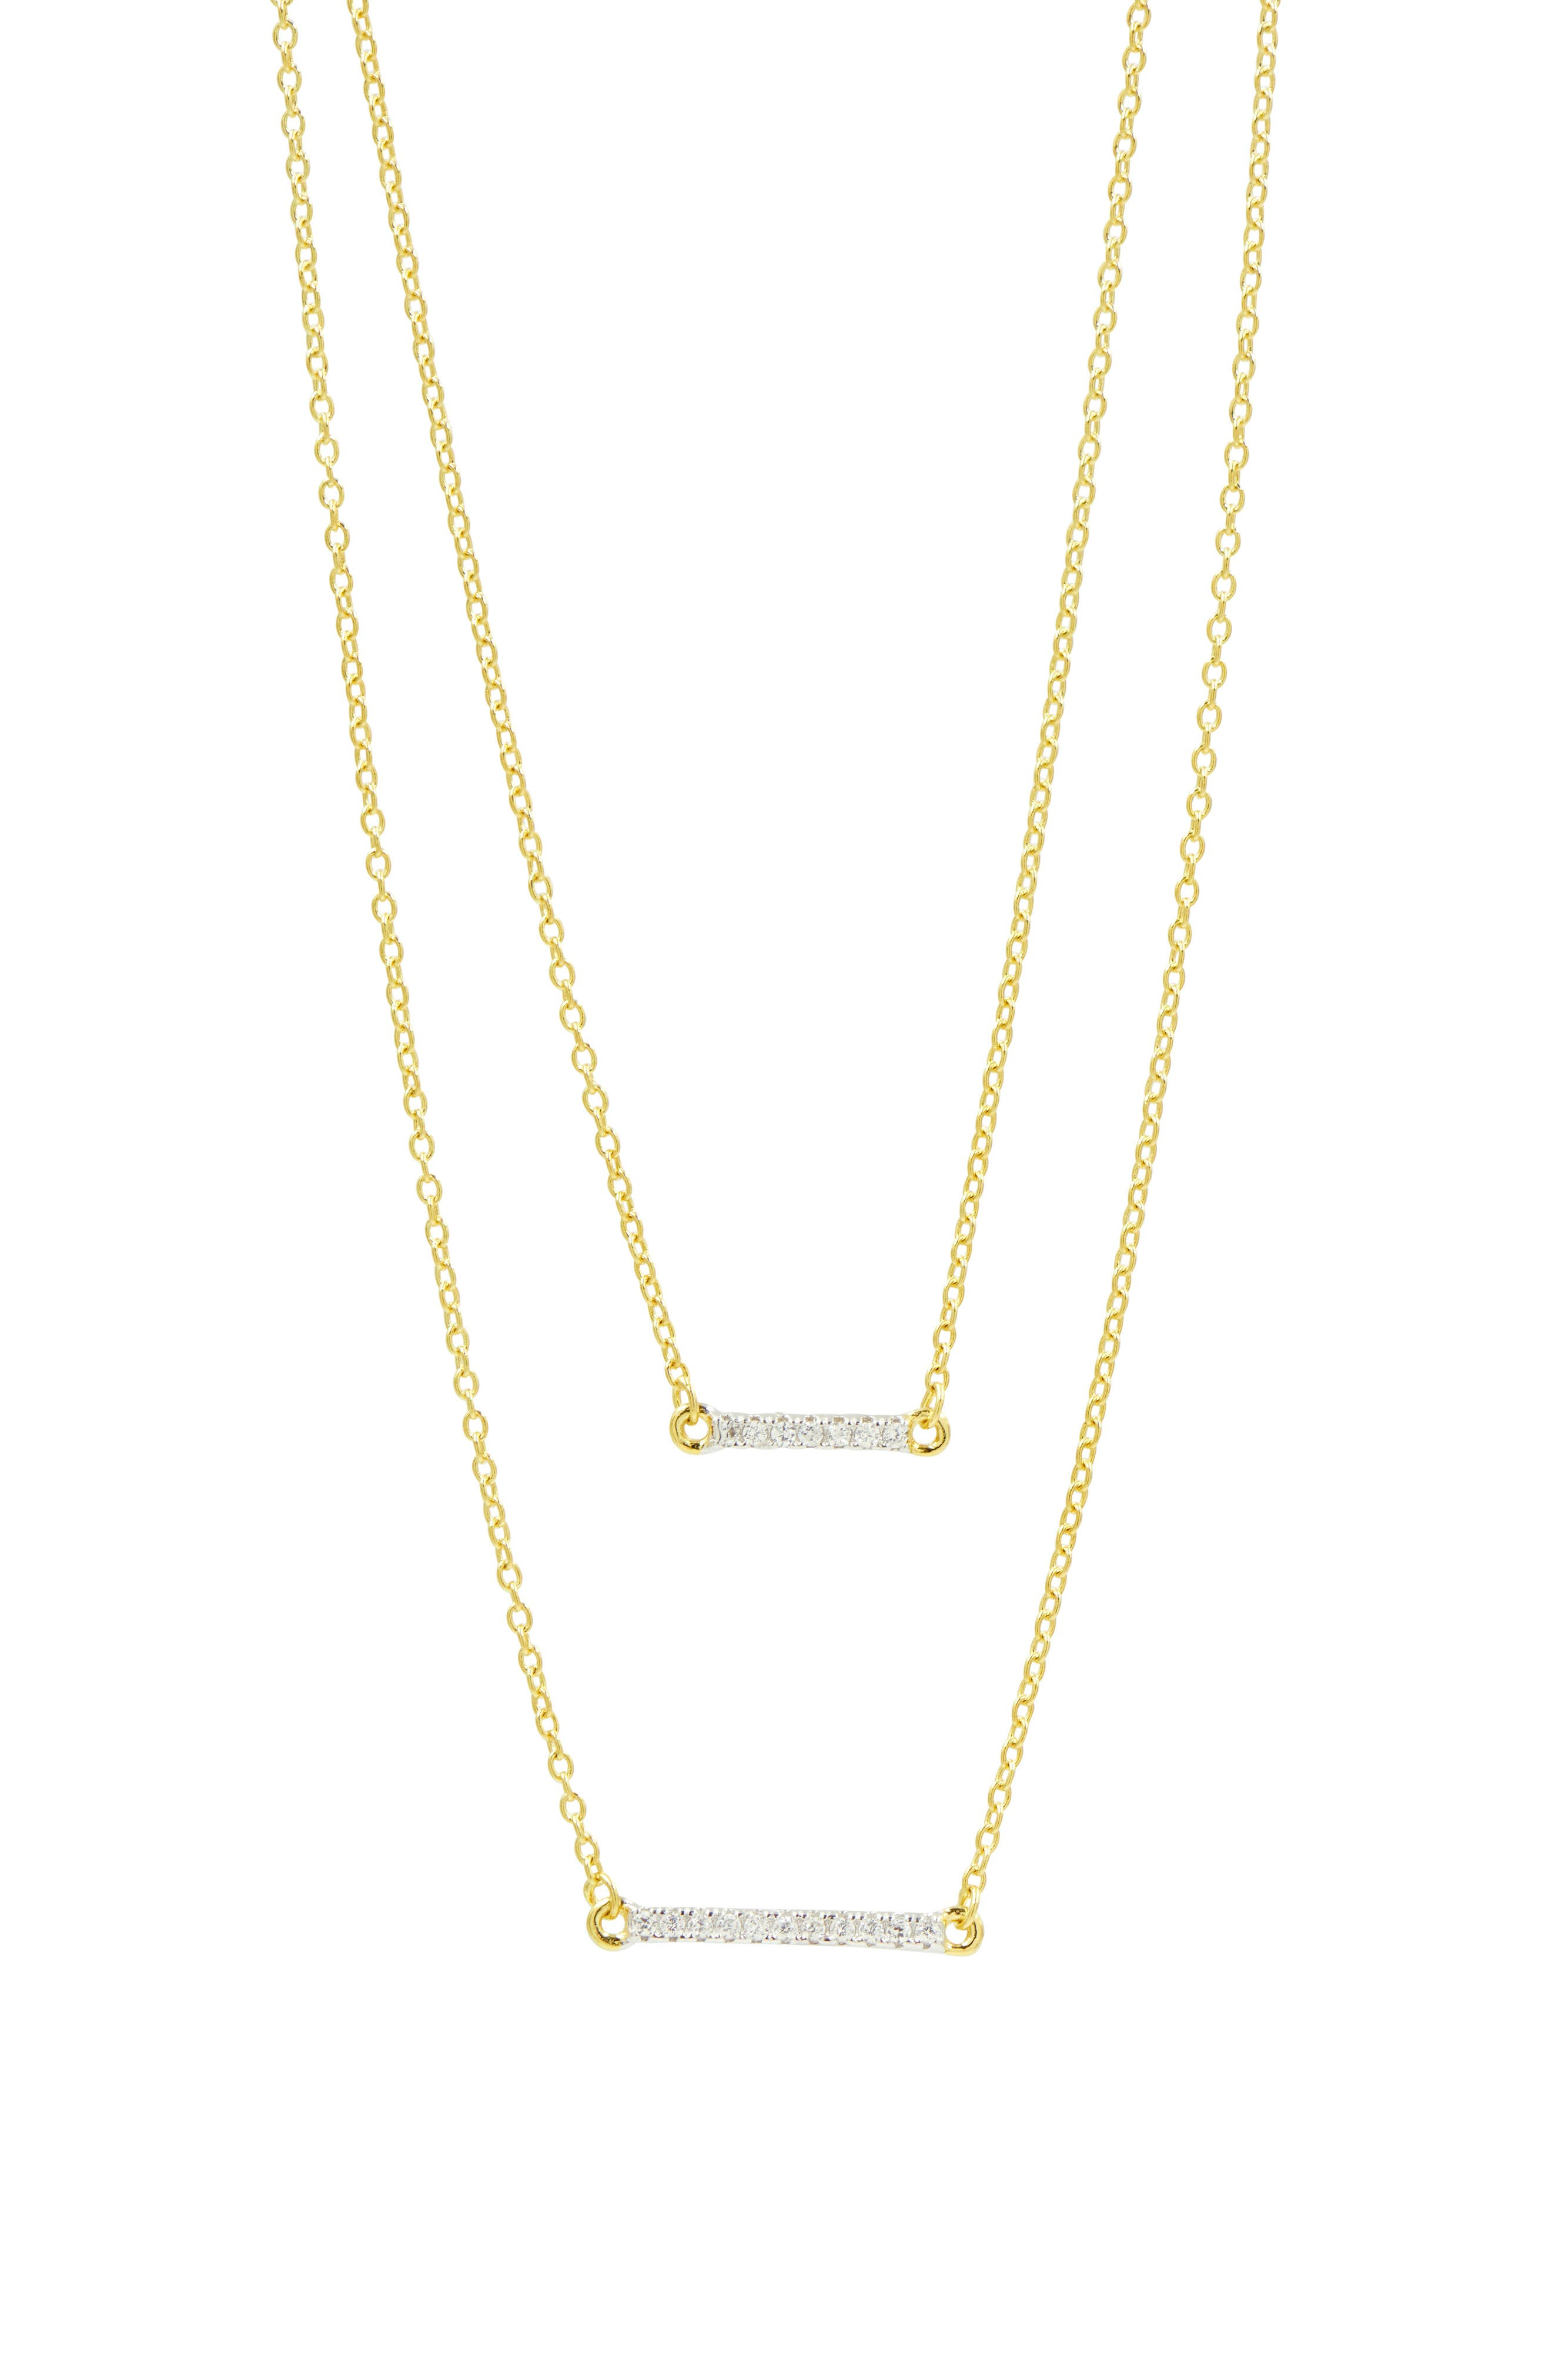 Radiance Double Pendant Necklace,                         Main,                         color, Gold/ Silver